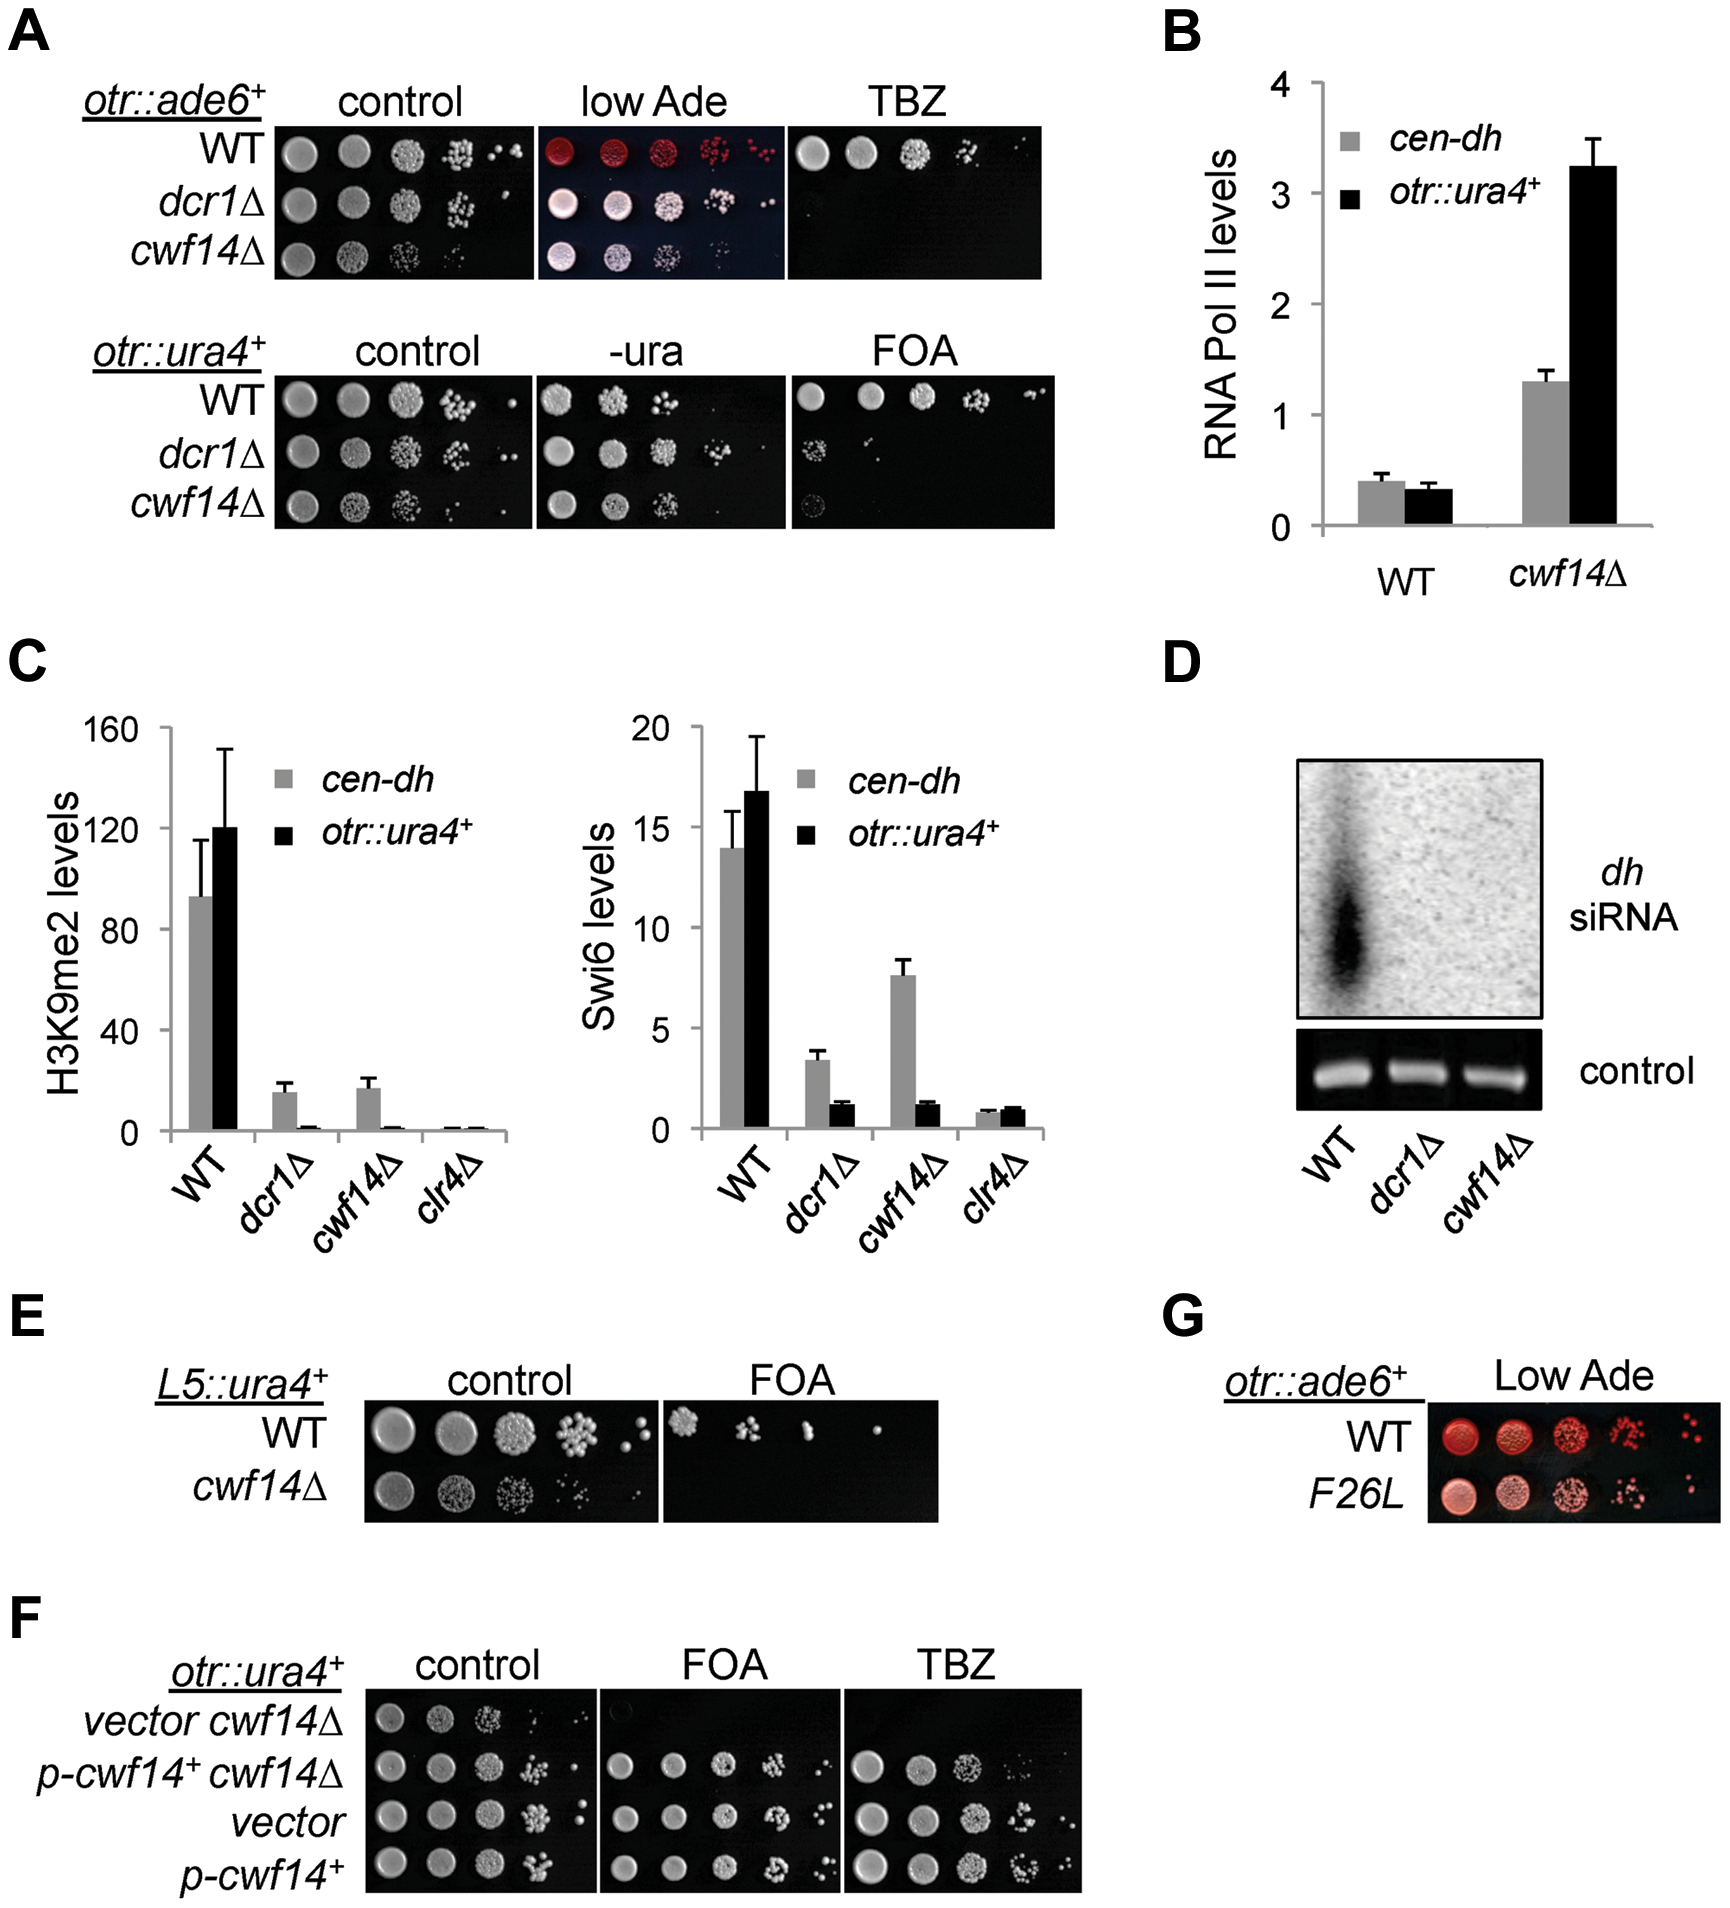 Cwf14 is required for pericentric heterochromatin assembly through the RNAi pathway.